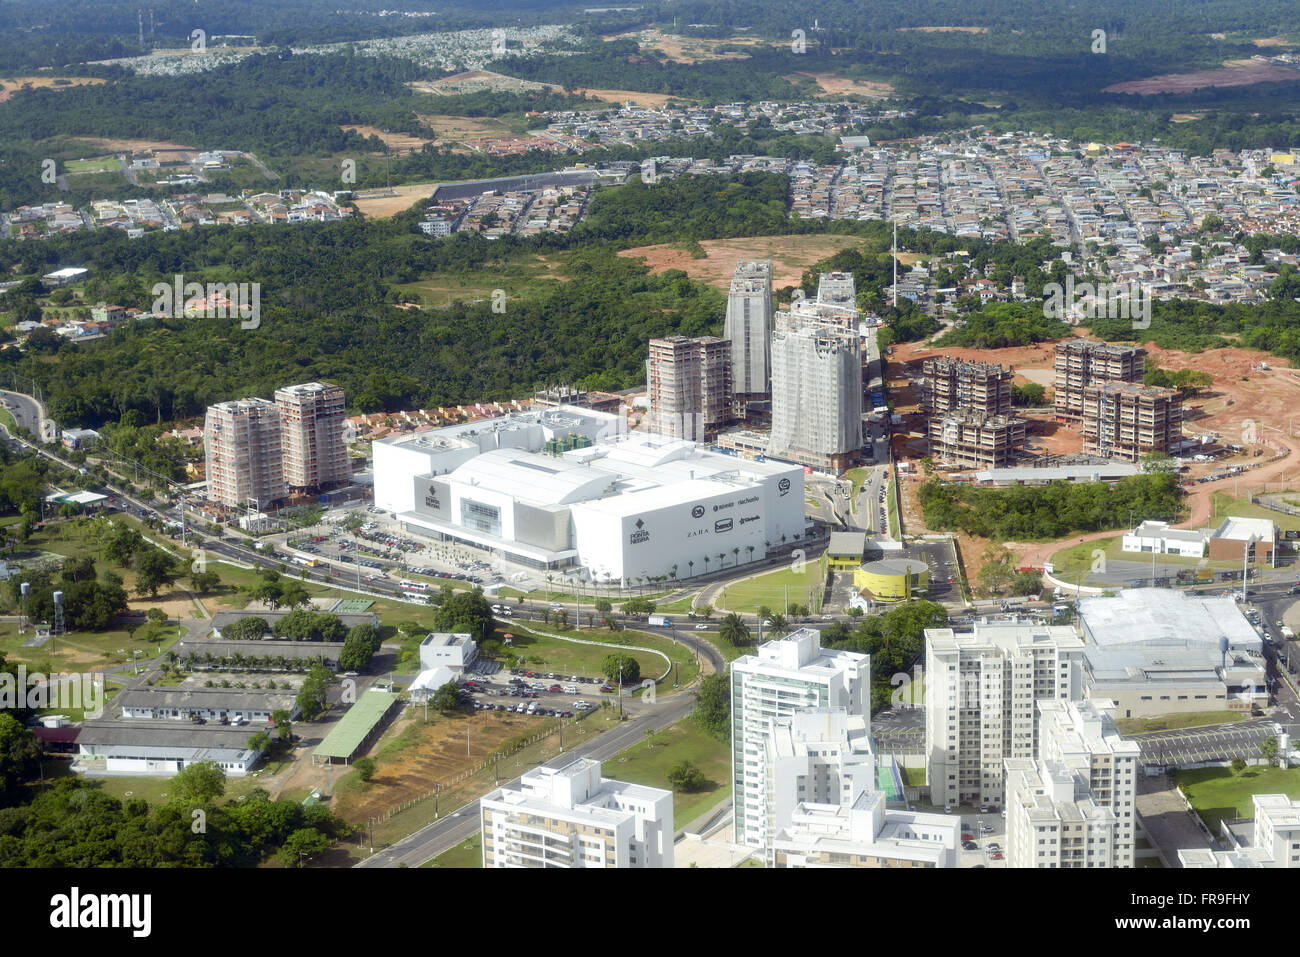 Aerial view of Ponta Negra urbanized - Stock Image